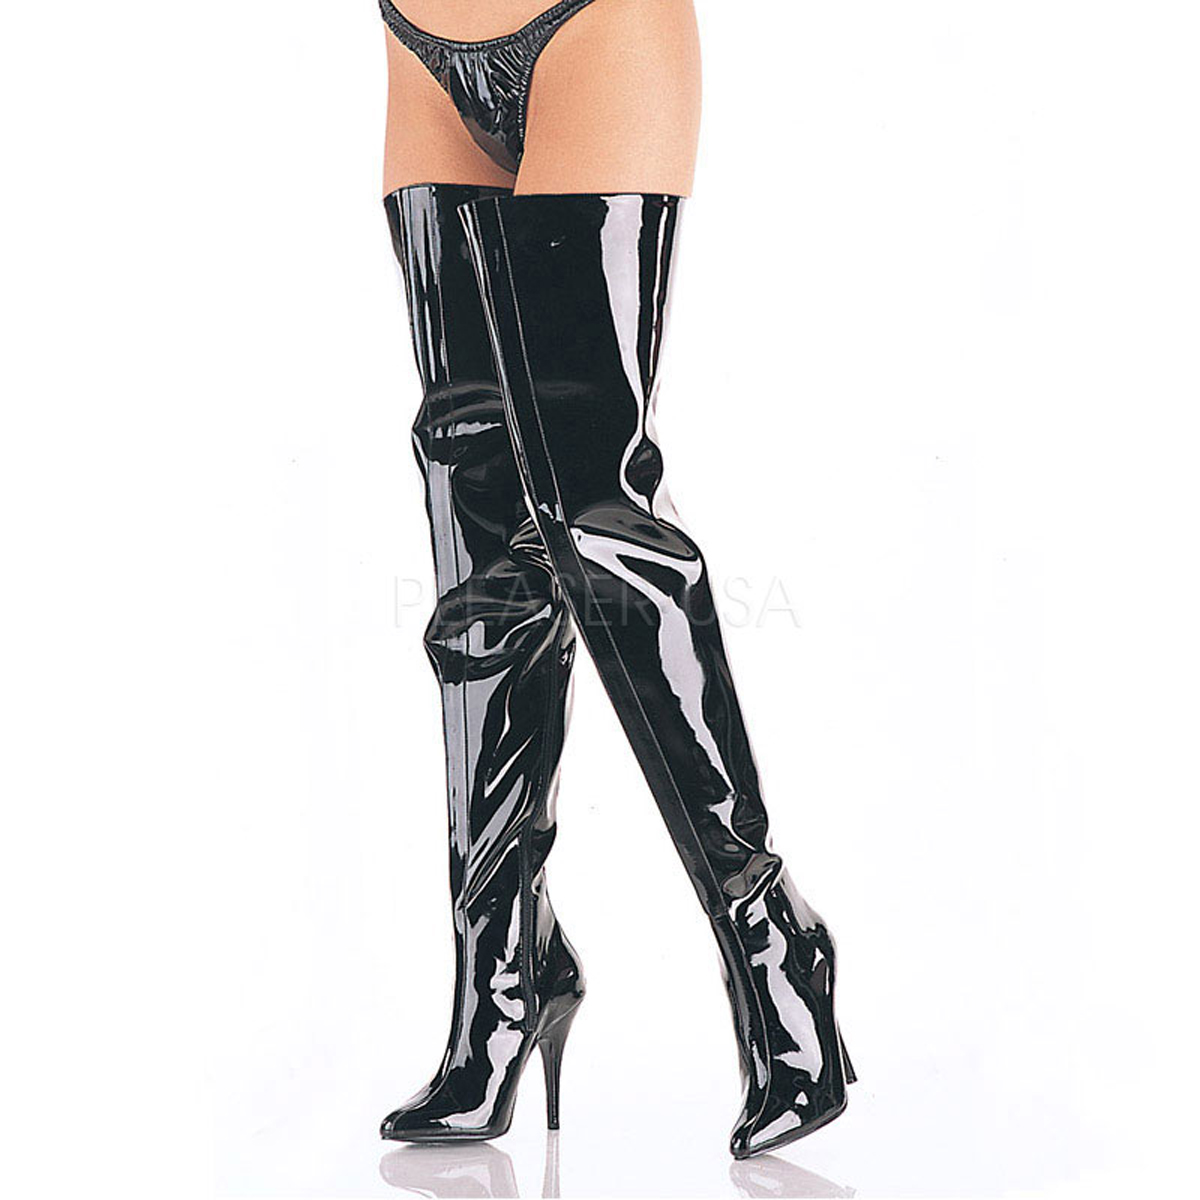 5 Inch Stiletto Heel Crotch High Boots